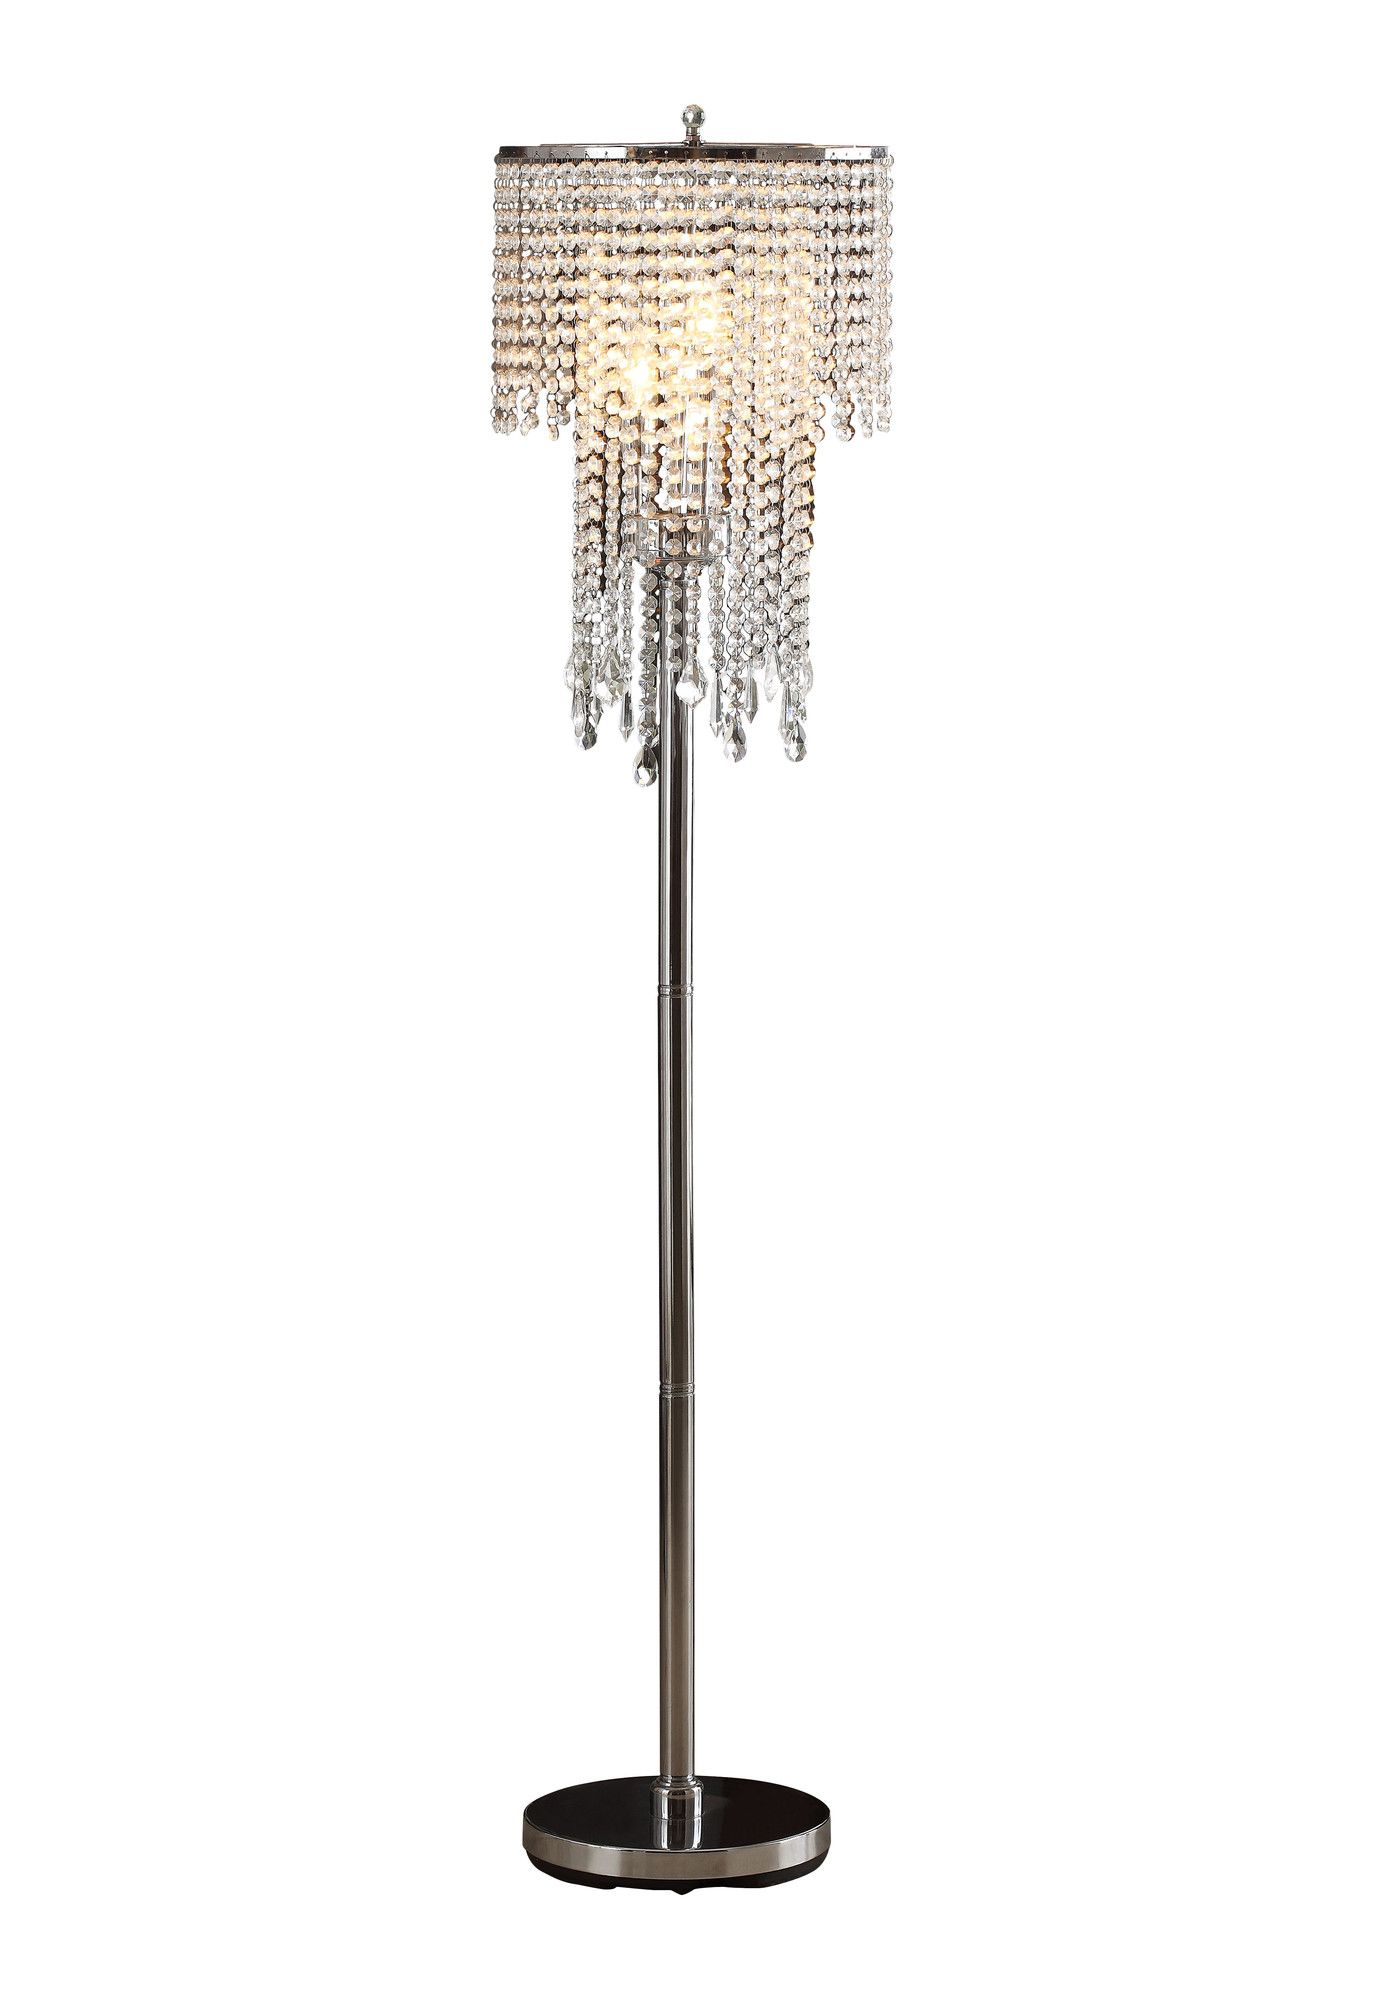 Tillinger 63 3 Light Crystal Floor Lamp Crystal Floor Lamp